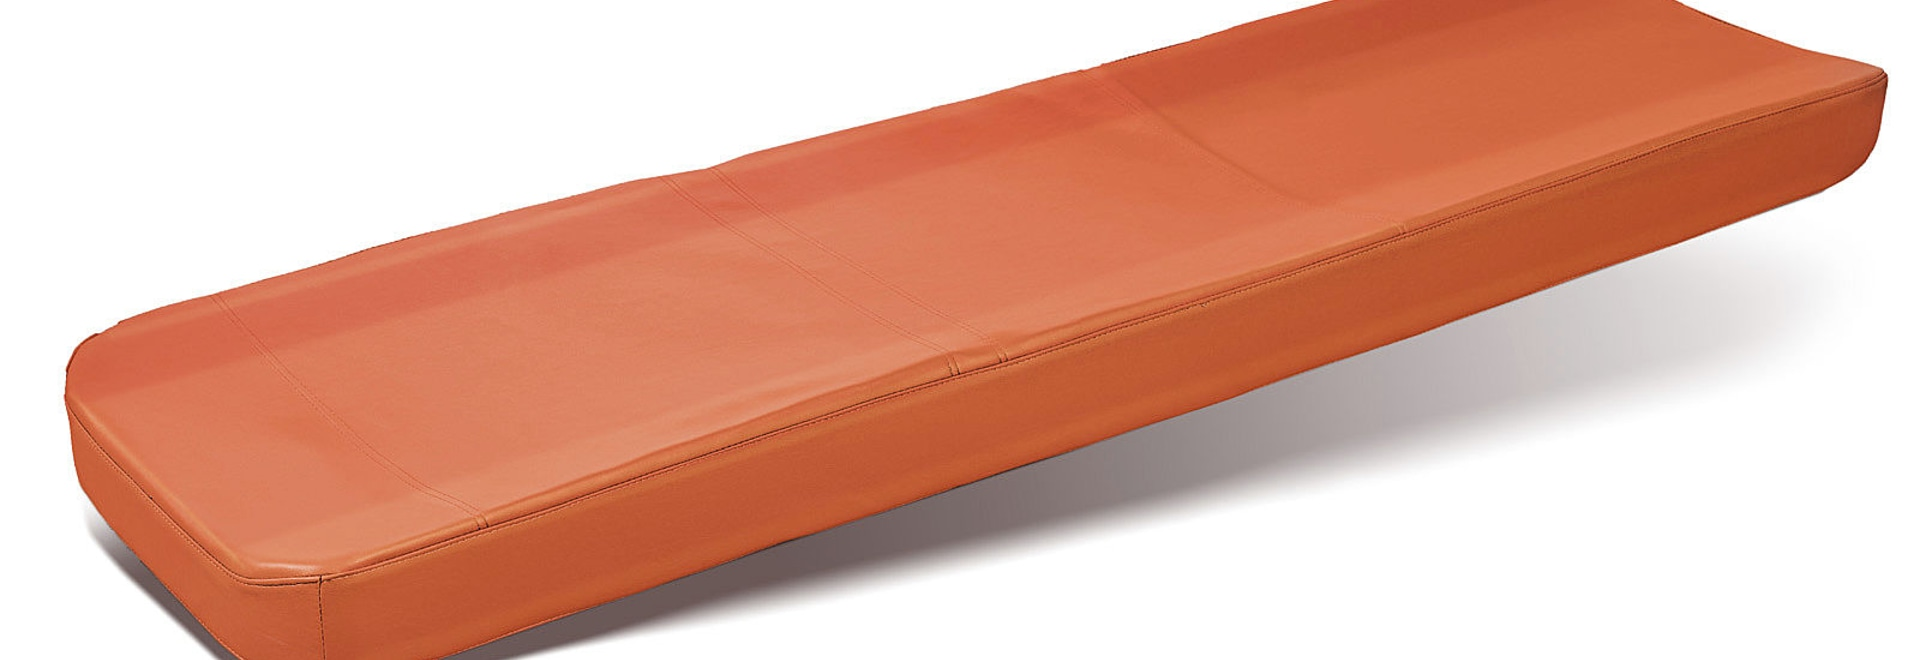 """HI-COM"" (Art. 7018/A) - Orange mattress made with expanded polyurethane at slow memory and fluid therapeutic gel"